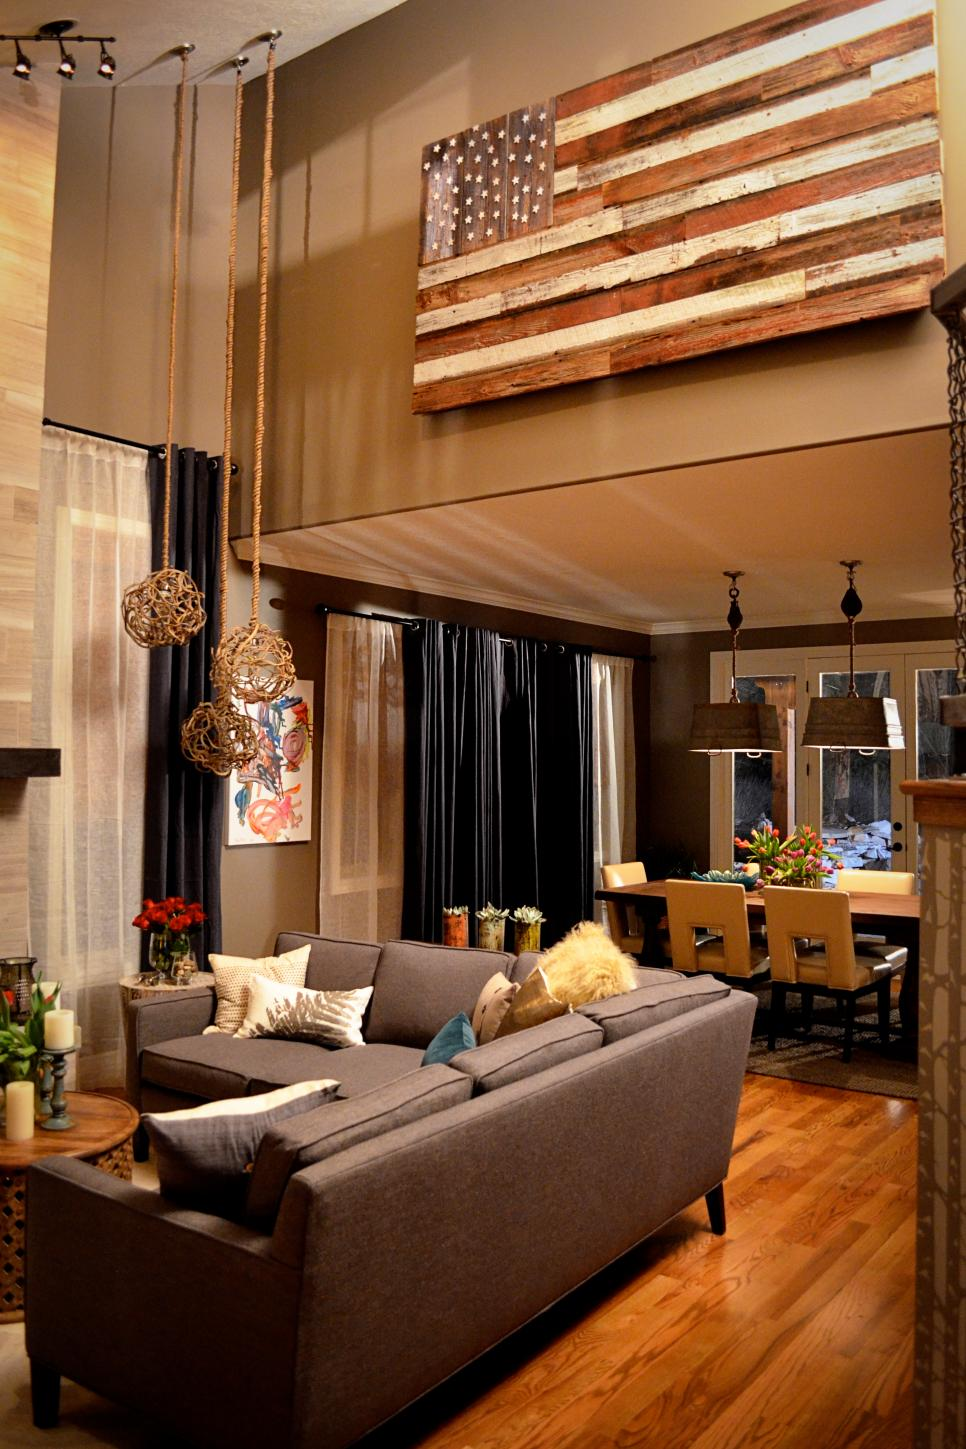 Rustic Barnwood Decorating Ideas